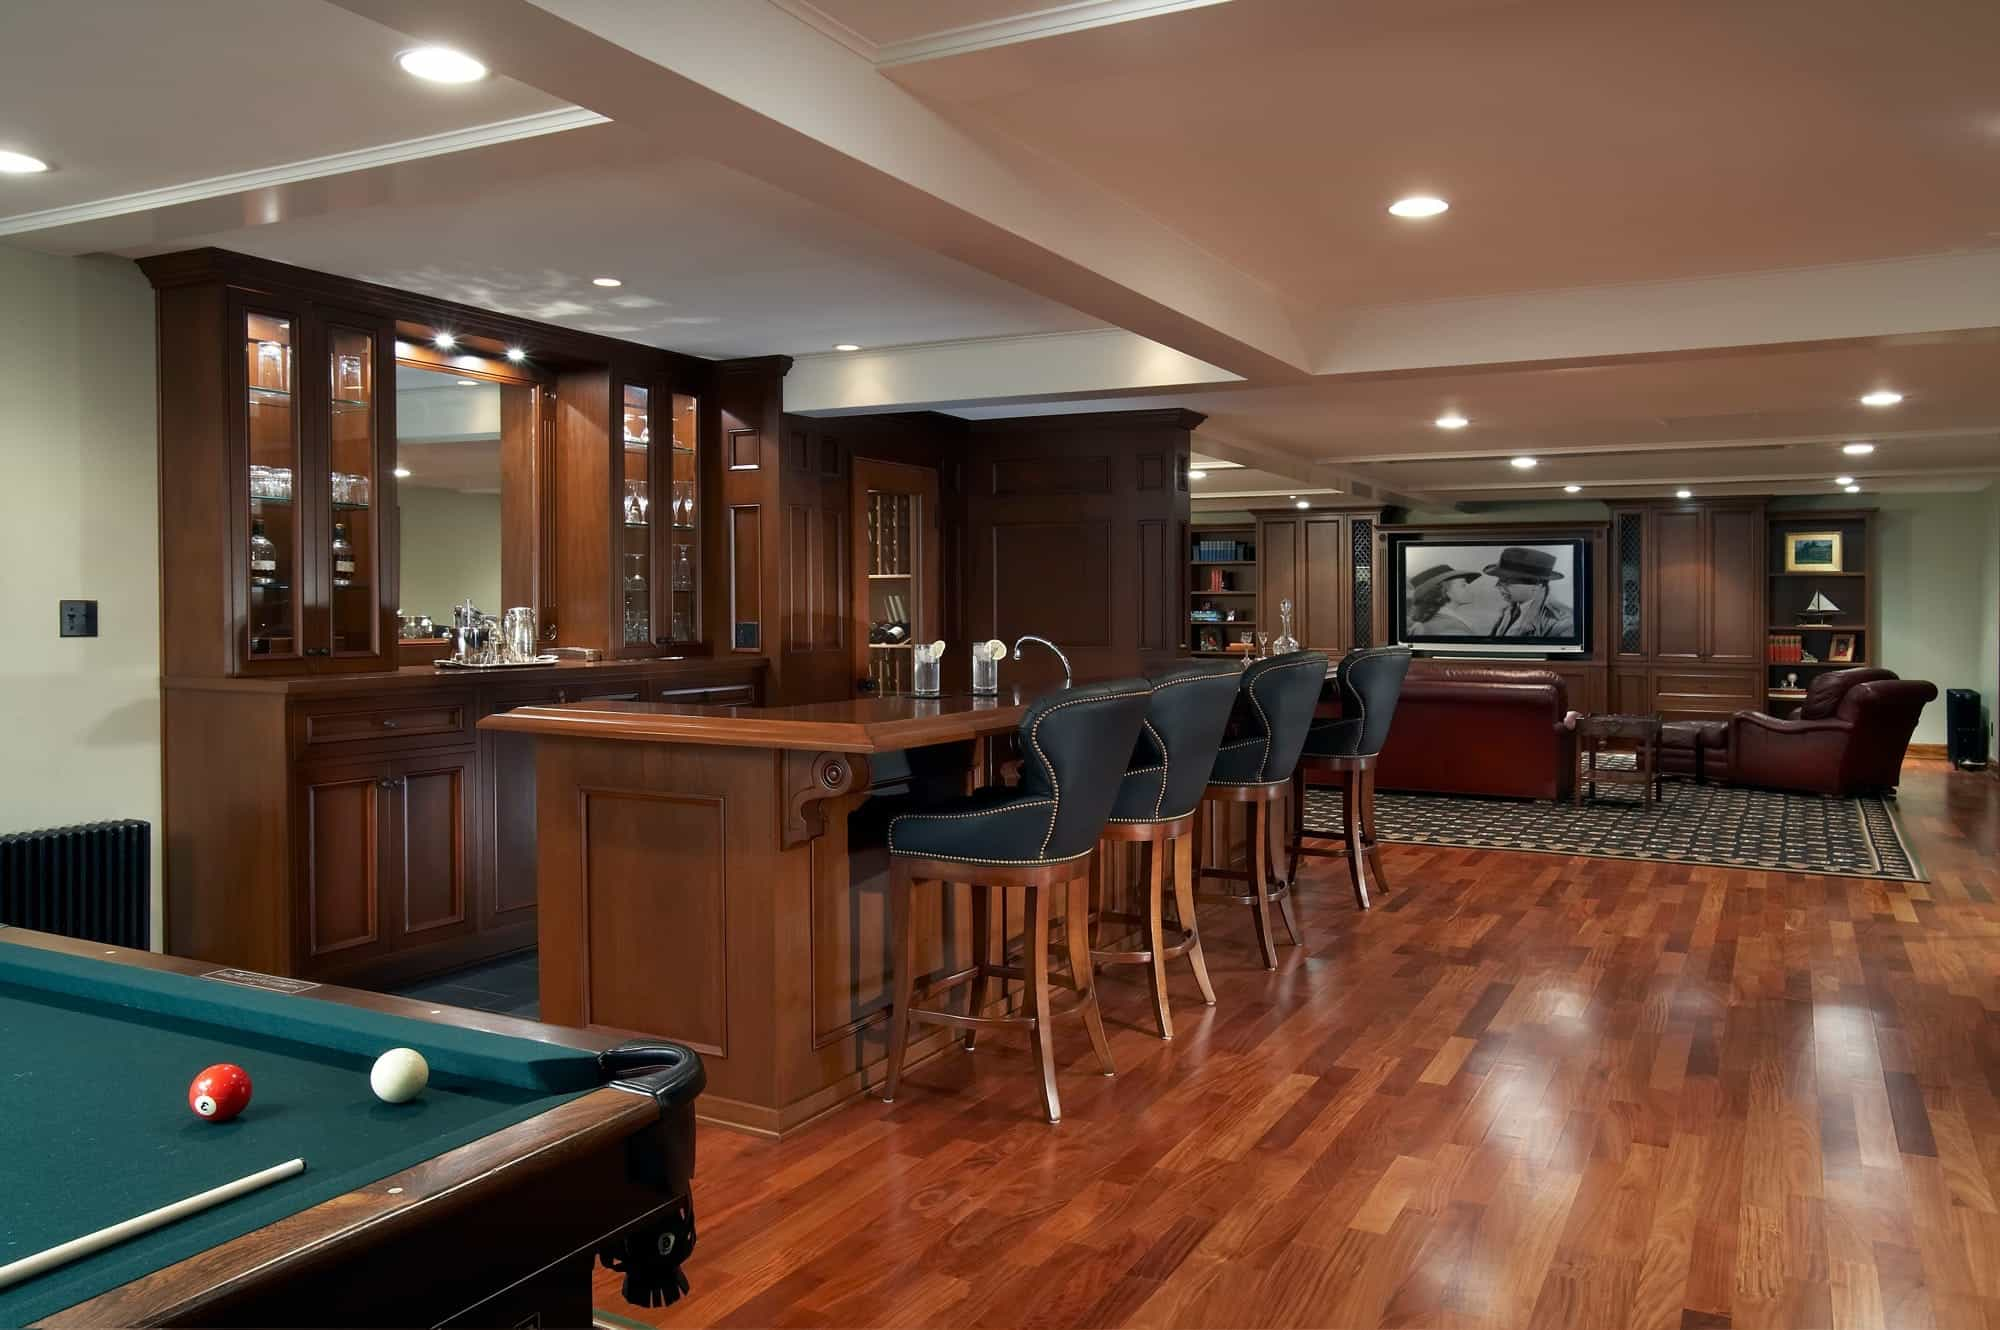 Traditional Kitchen And Wet Bar With Hardwood Floor (Image 9 of 12)